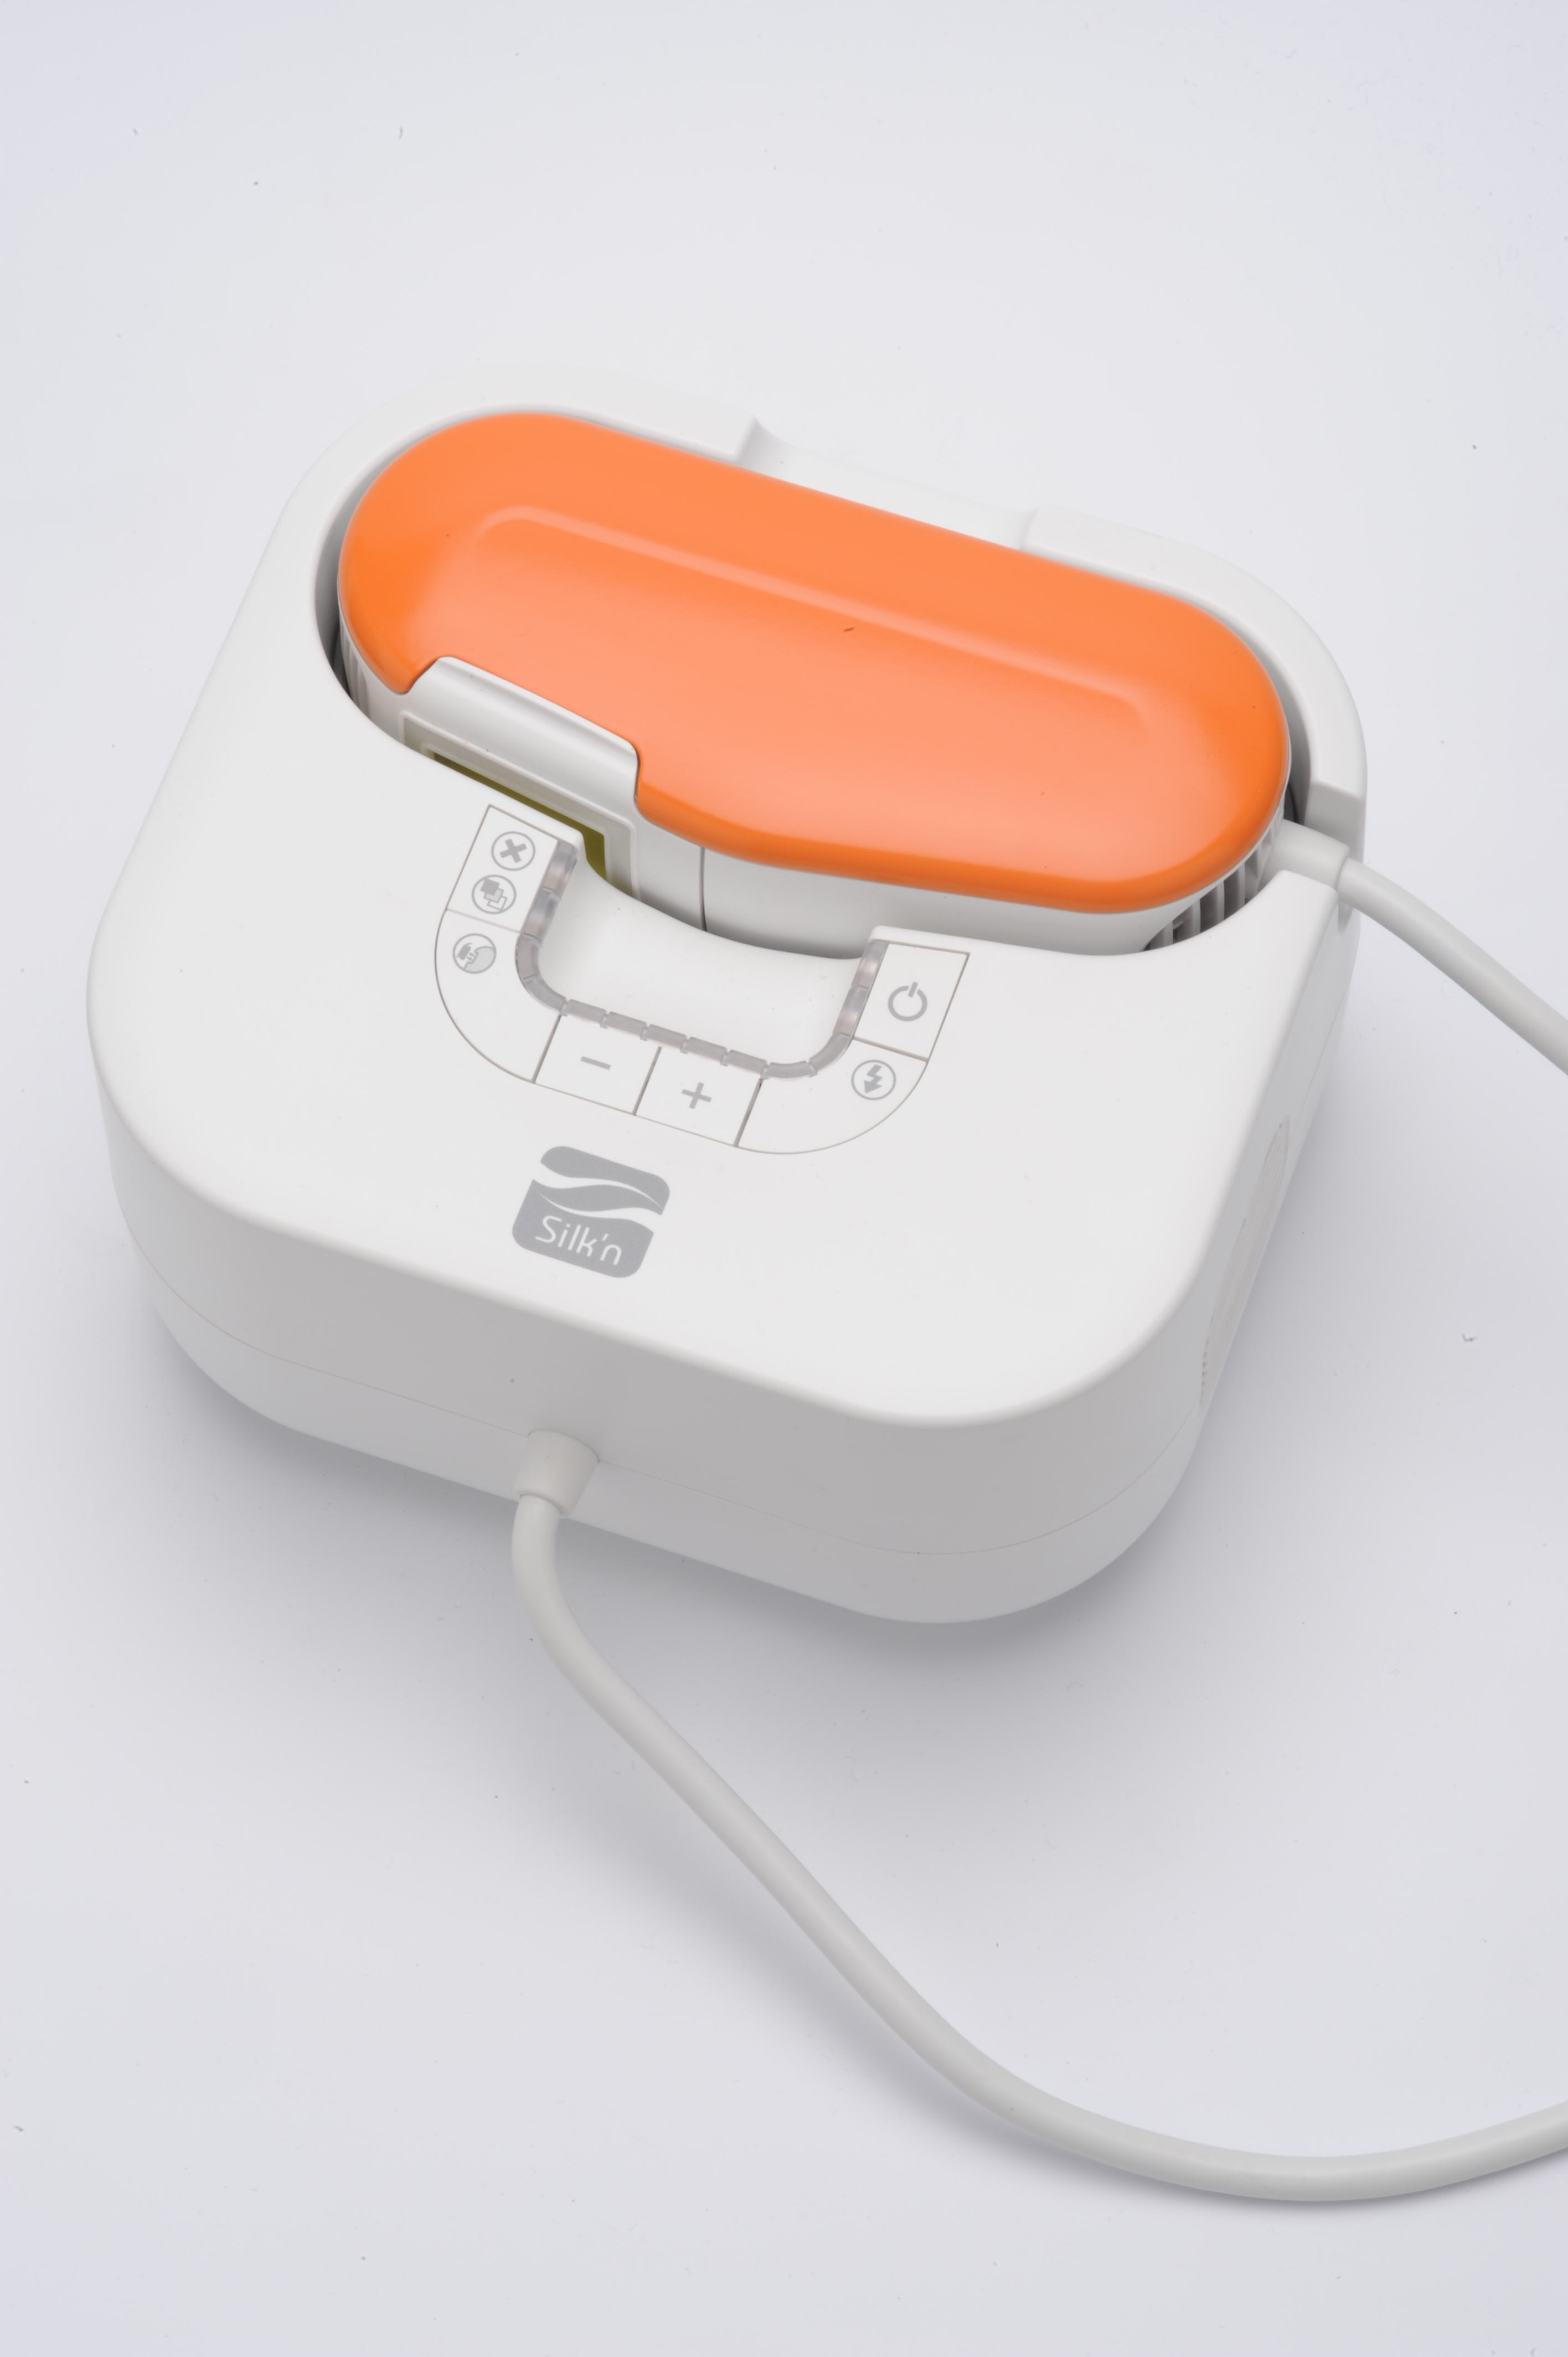 Silk'n SensEpil Face & Body Hair Removal Device - Tangerine Orange (w/1500 pulse cartridge, equal to 2 standard cartridges, $45 value)